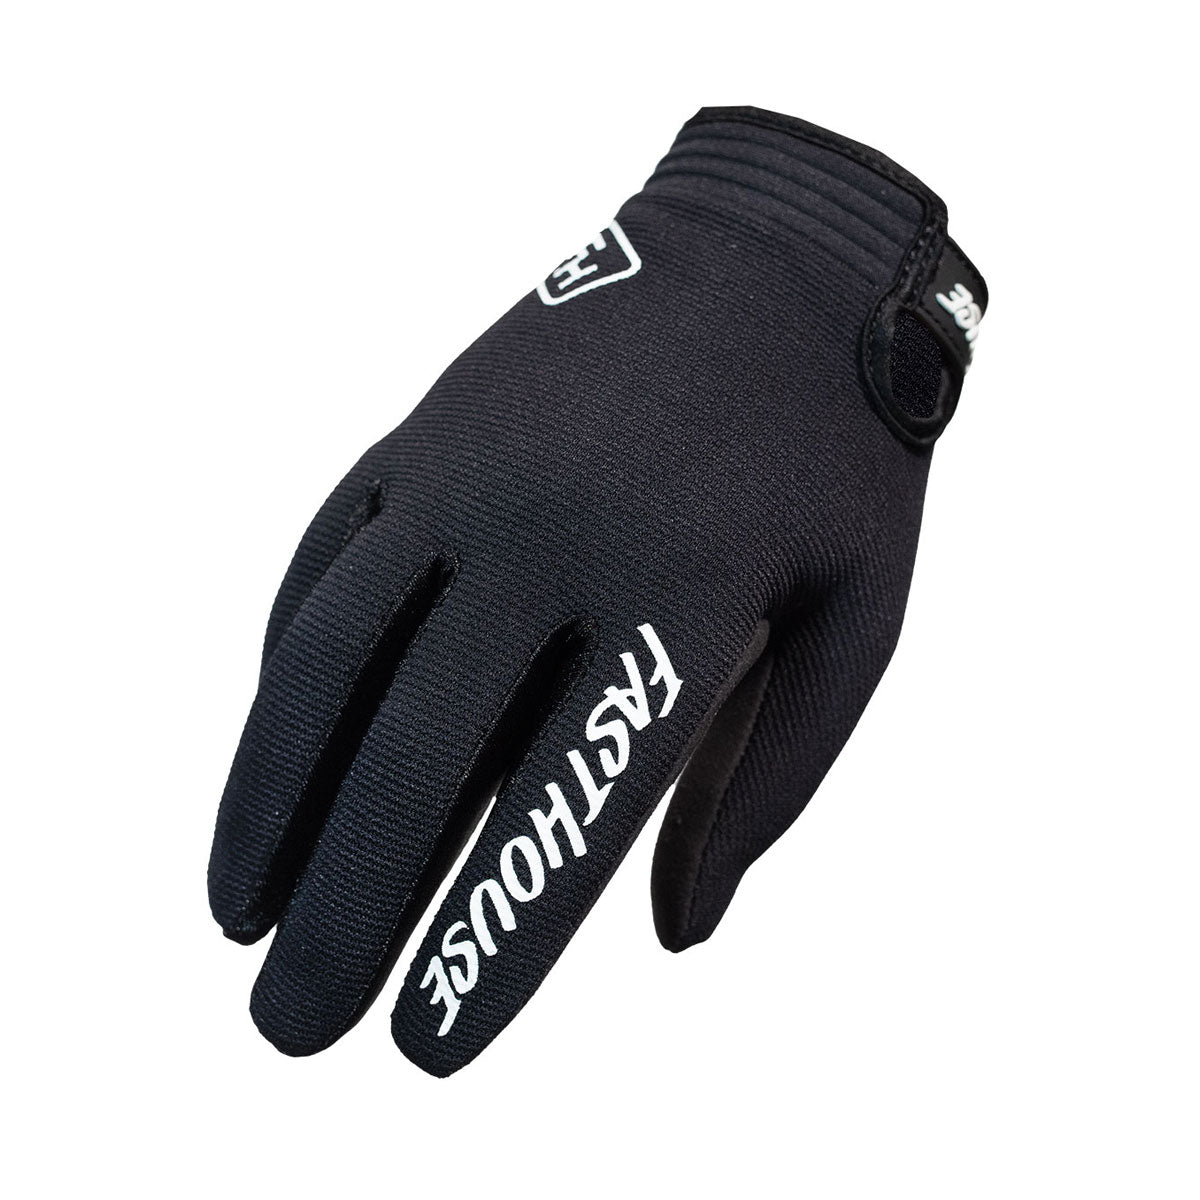 Fasthouse Carbon Youth Glove- Black